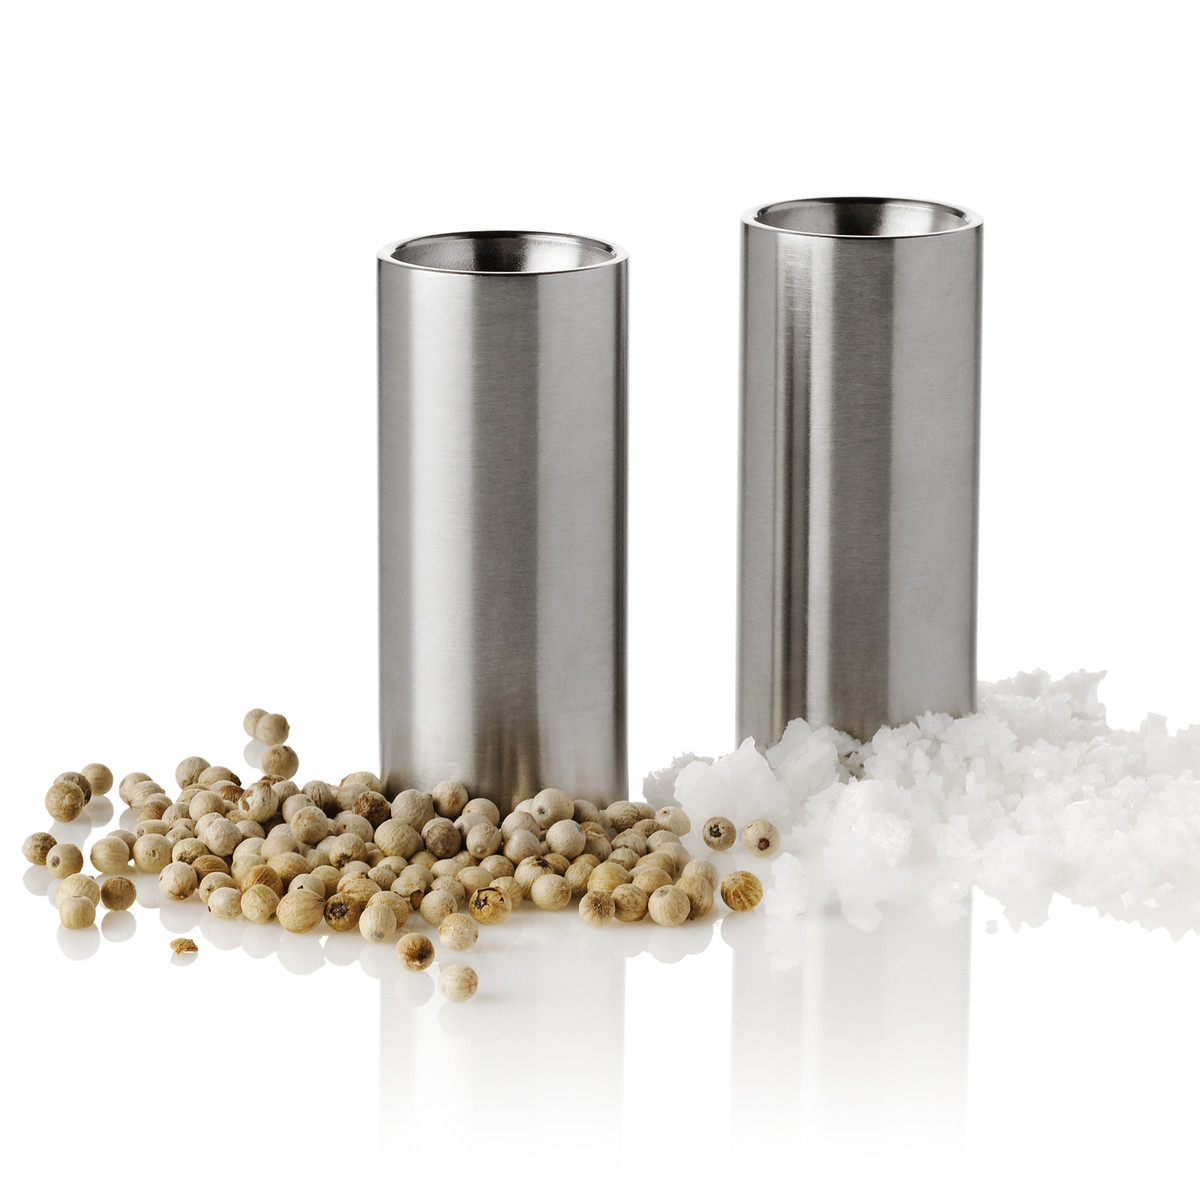 stelton spices more salt pepper shaker cylinda salt pepper set. Black Bedroom Furniture Sets. Home Design Ideas